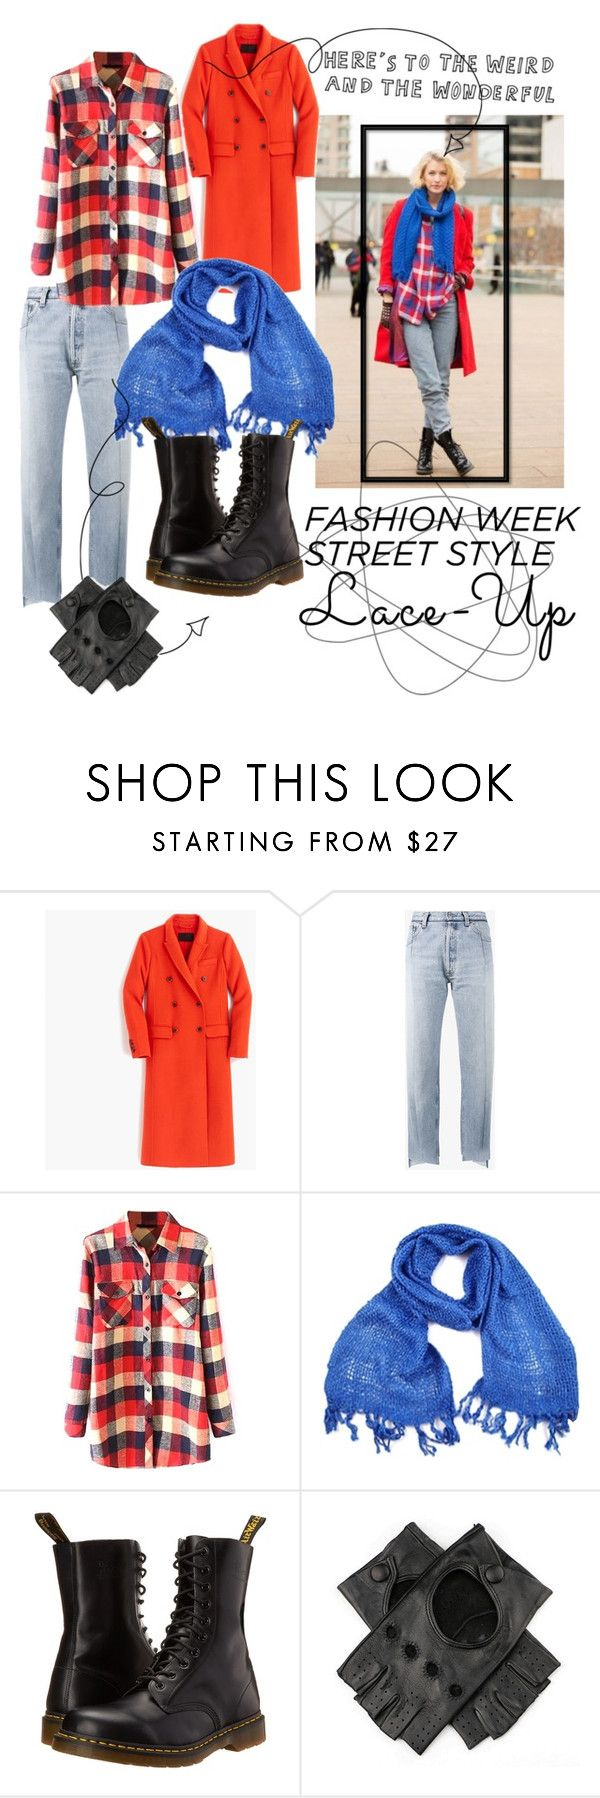 """""""Lace up"""" by alliweb ❤ liked on Polyvore featuring J.Crew, Vetements, WithChic, Dr. Martens and Black"""